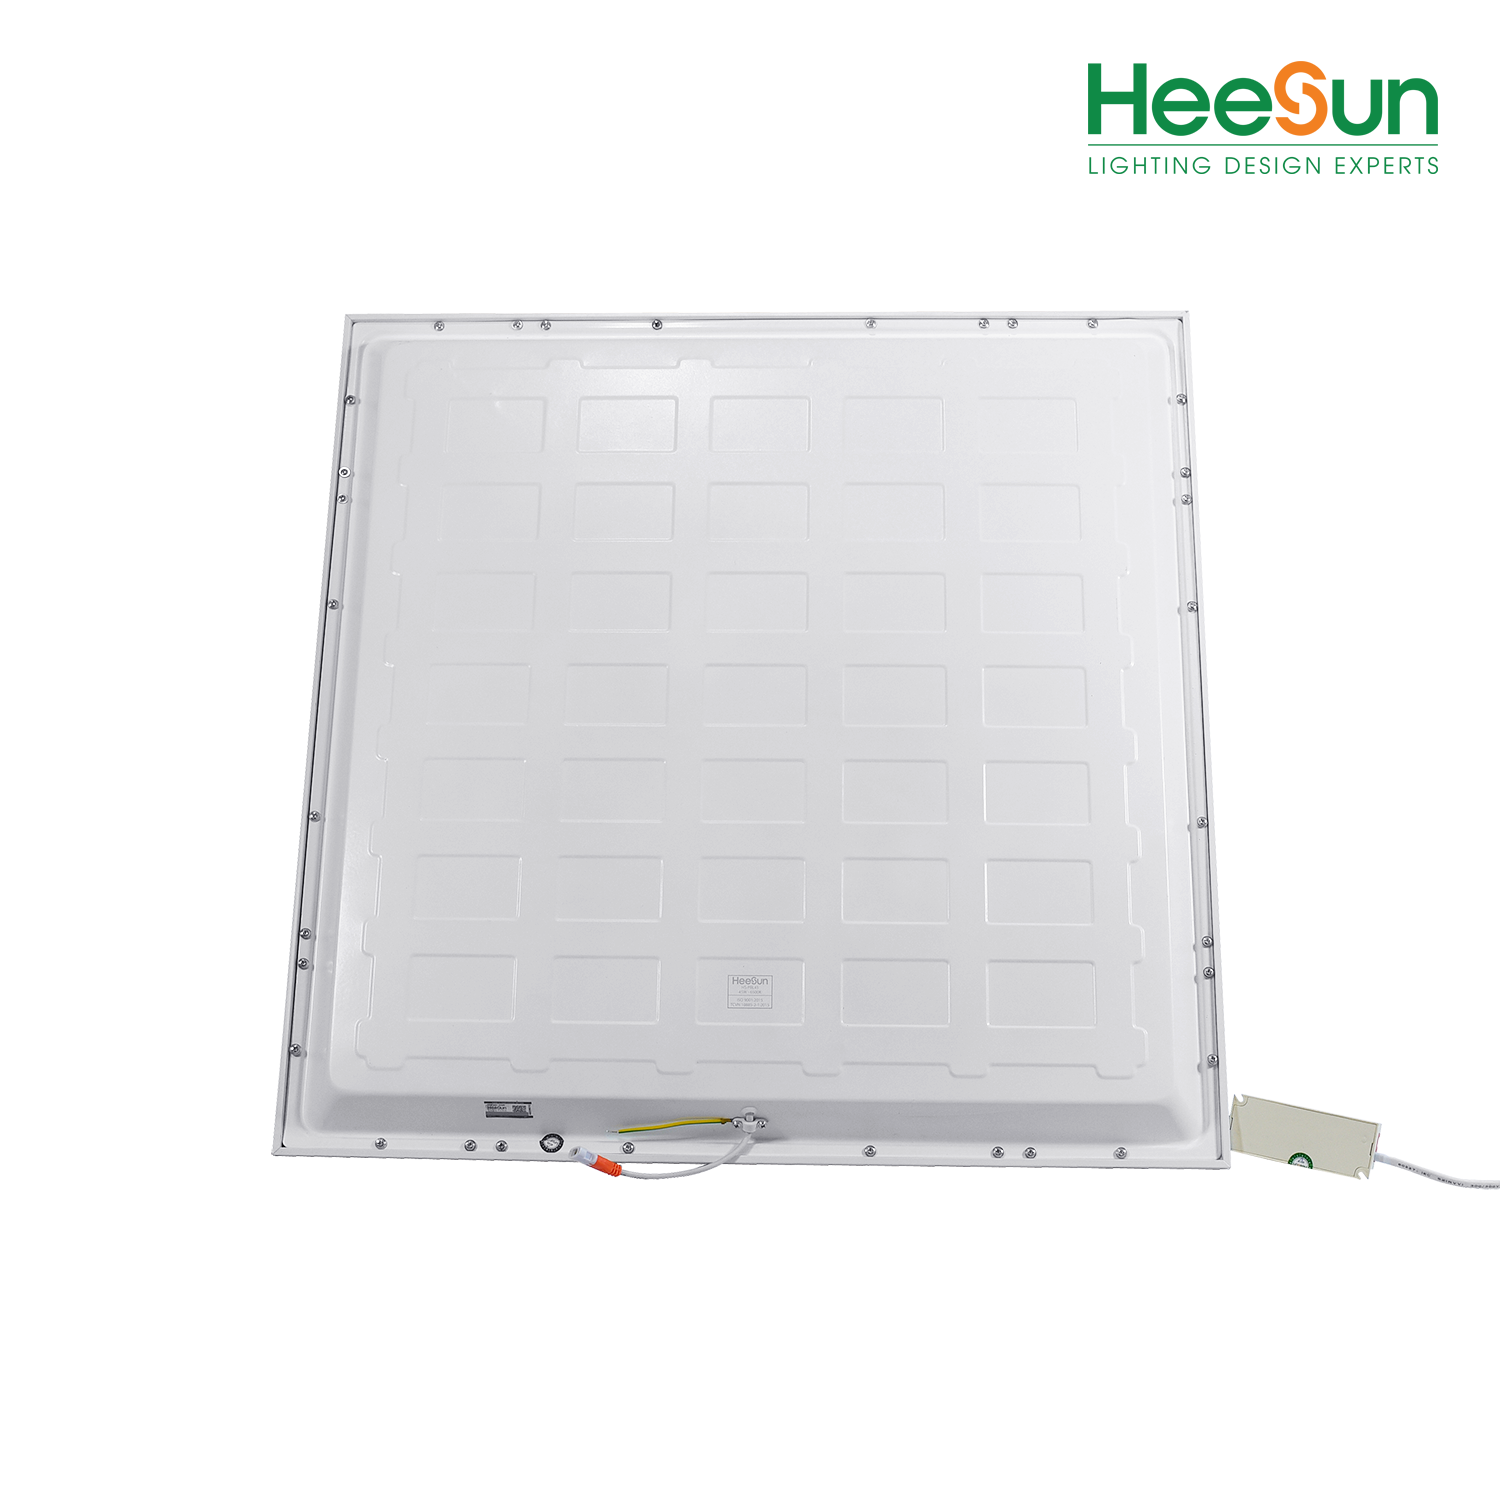 Đèn LED panel tấm dòng Backlight HS-PBL45_2